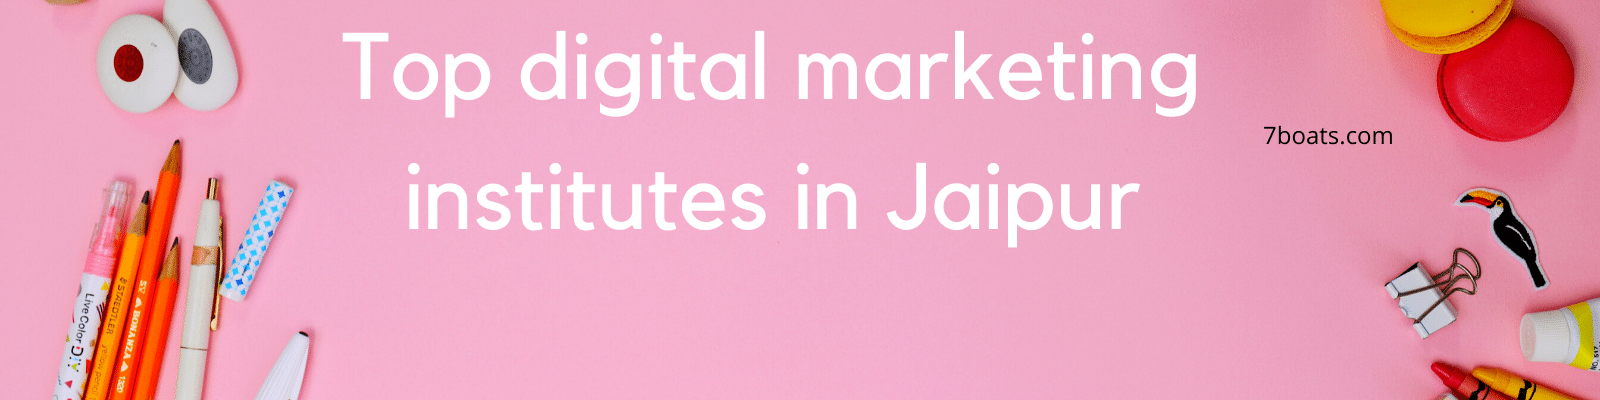 best digital marketing training institutes in Jaipur